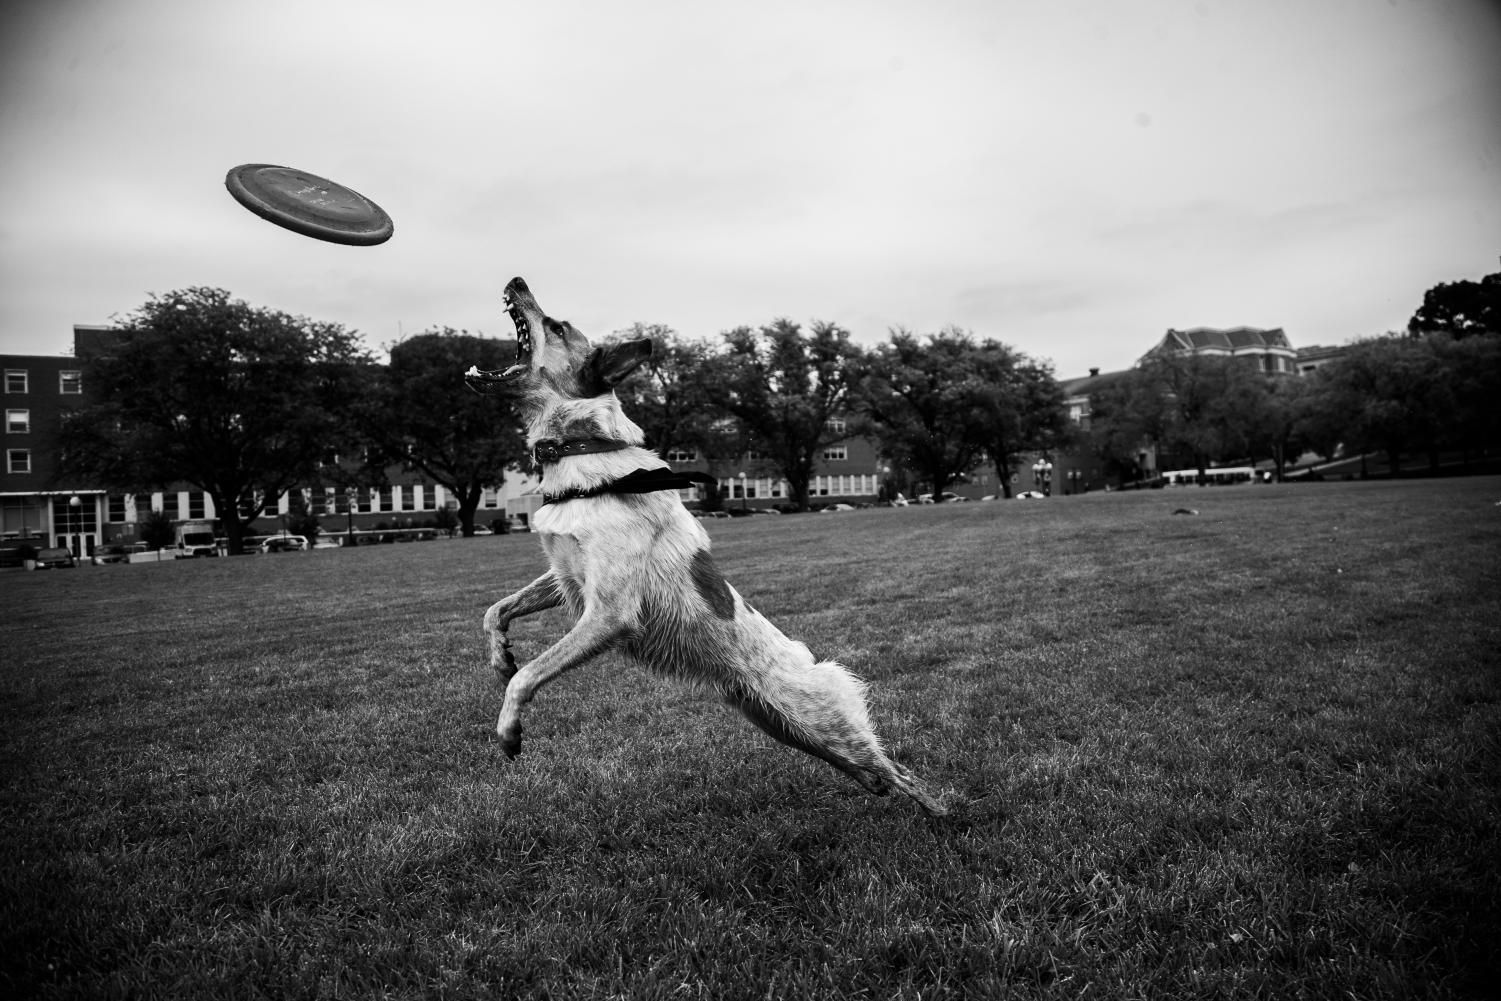 Apollo+catches+a+frisbee+thrown+by+Jennifer+McCarron+in+Hubbard+Park+on+Tuesday%2C+Oct.+2%2C+2018.+McCarron+brings+Apollo+to+Hubbard+Park+because+it%27s+on+campus+and+a+good+excuse+to+get+outside.+